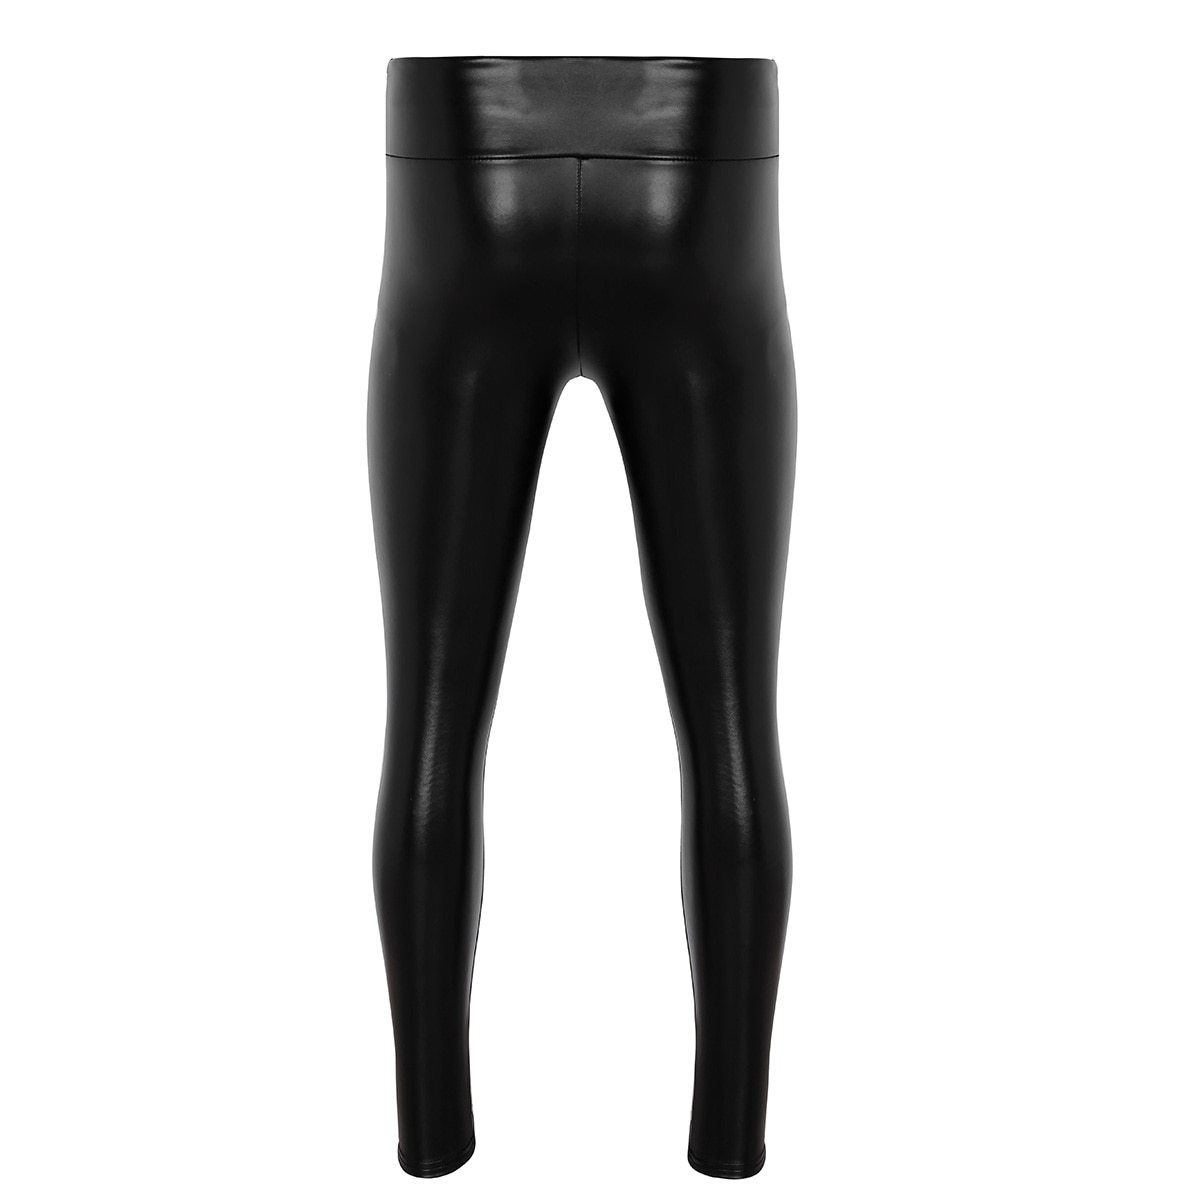 Faux Leather Bulge Pouch Legging Pants Sissy Panty Shop